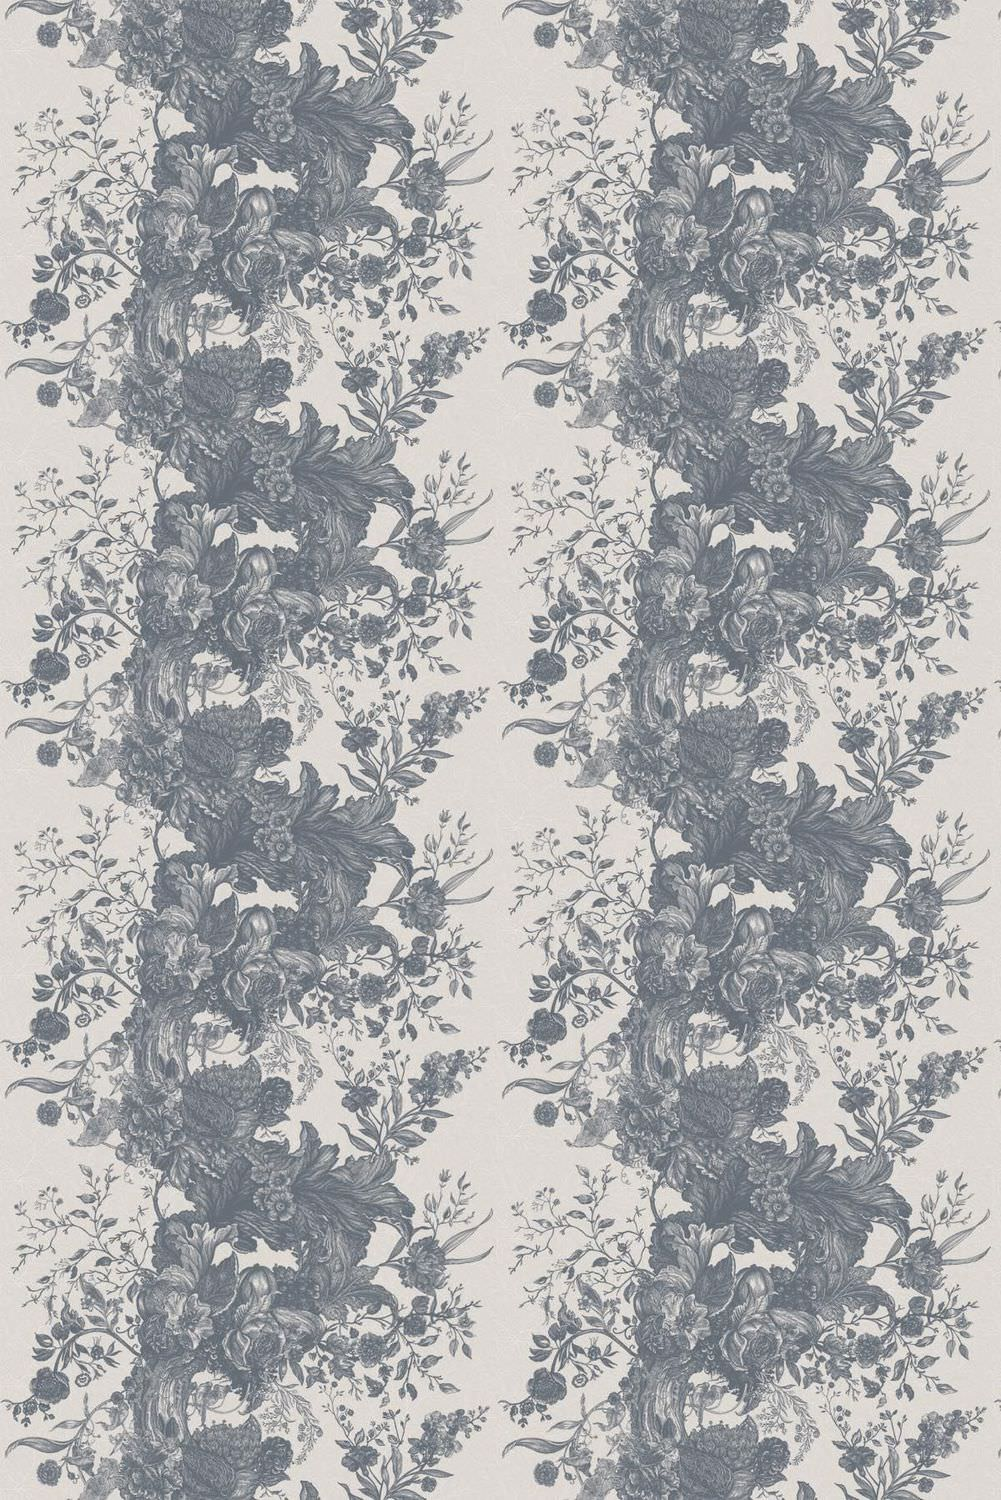 Fabric tree pattern - Upholstery Fabric For Curtains Wall Floral Pattern Tree Of Life Toile Timorous Beasties